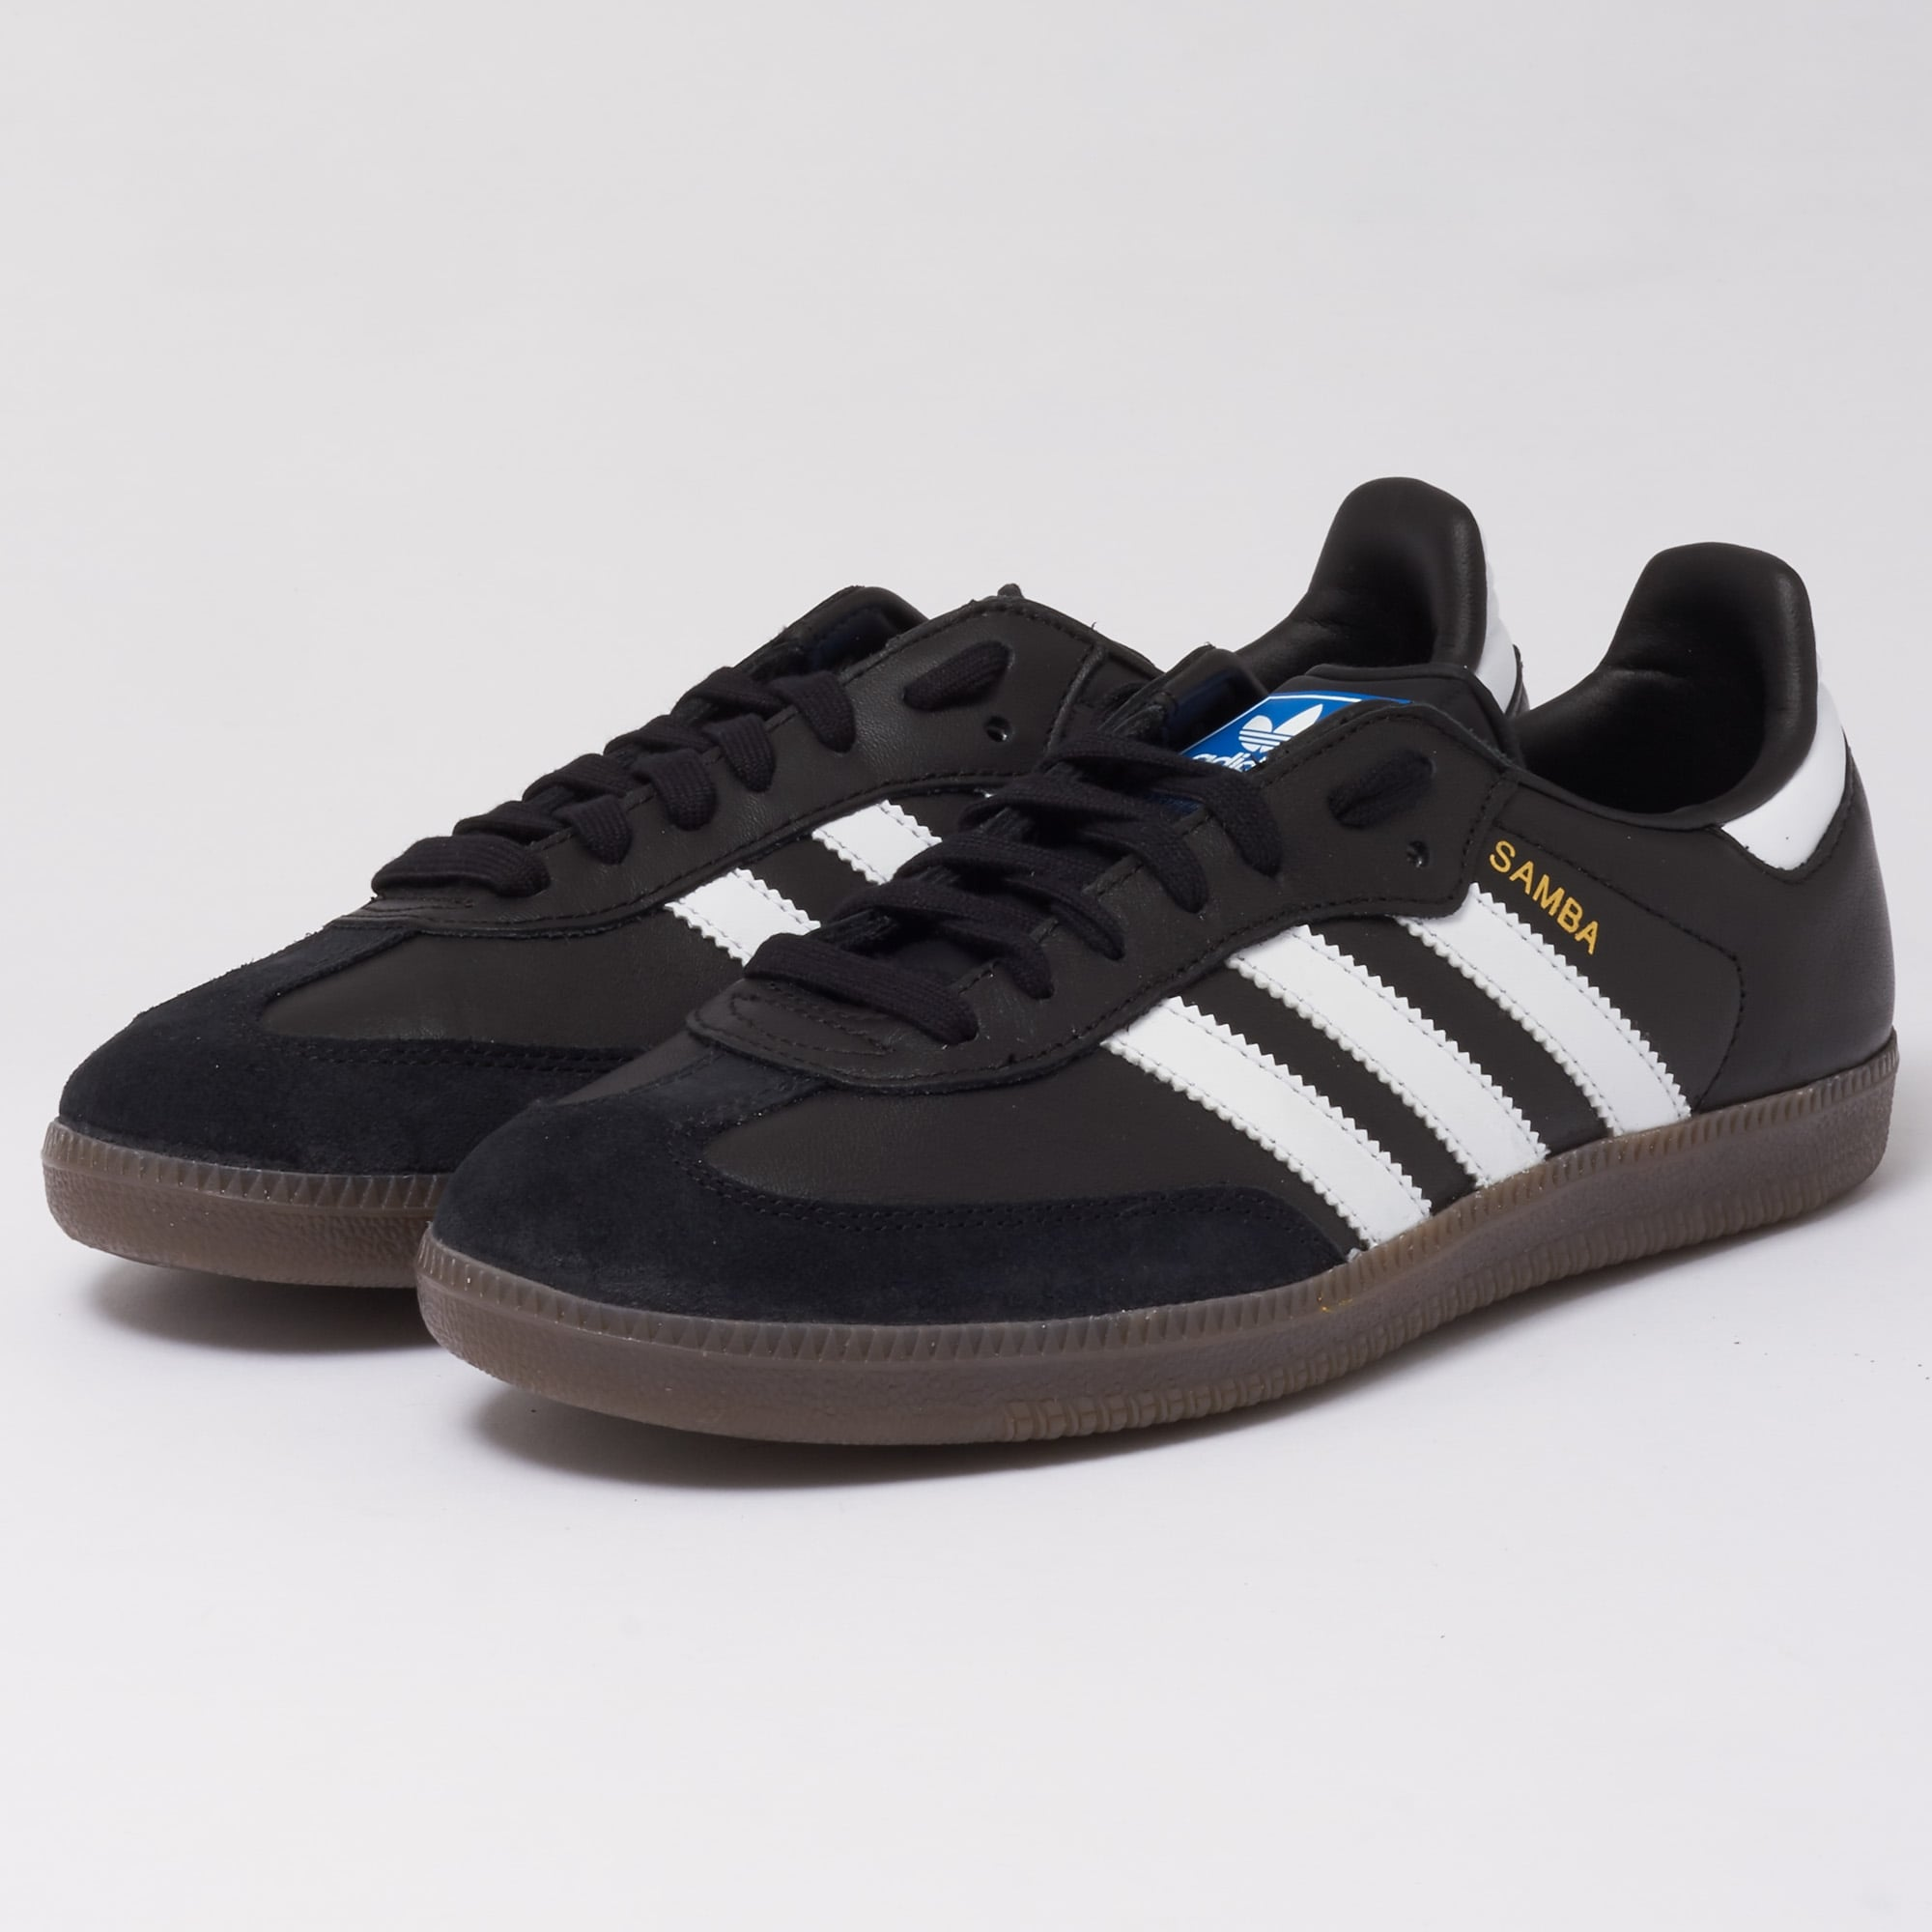 93f708fbaed Adidas Originals Samba OG (Core Black) at Dandy Fellow